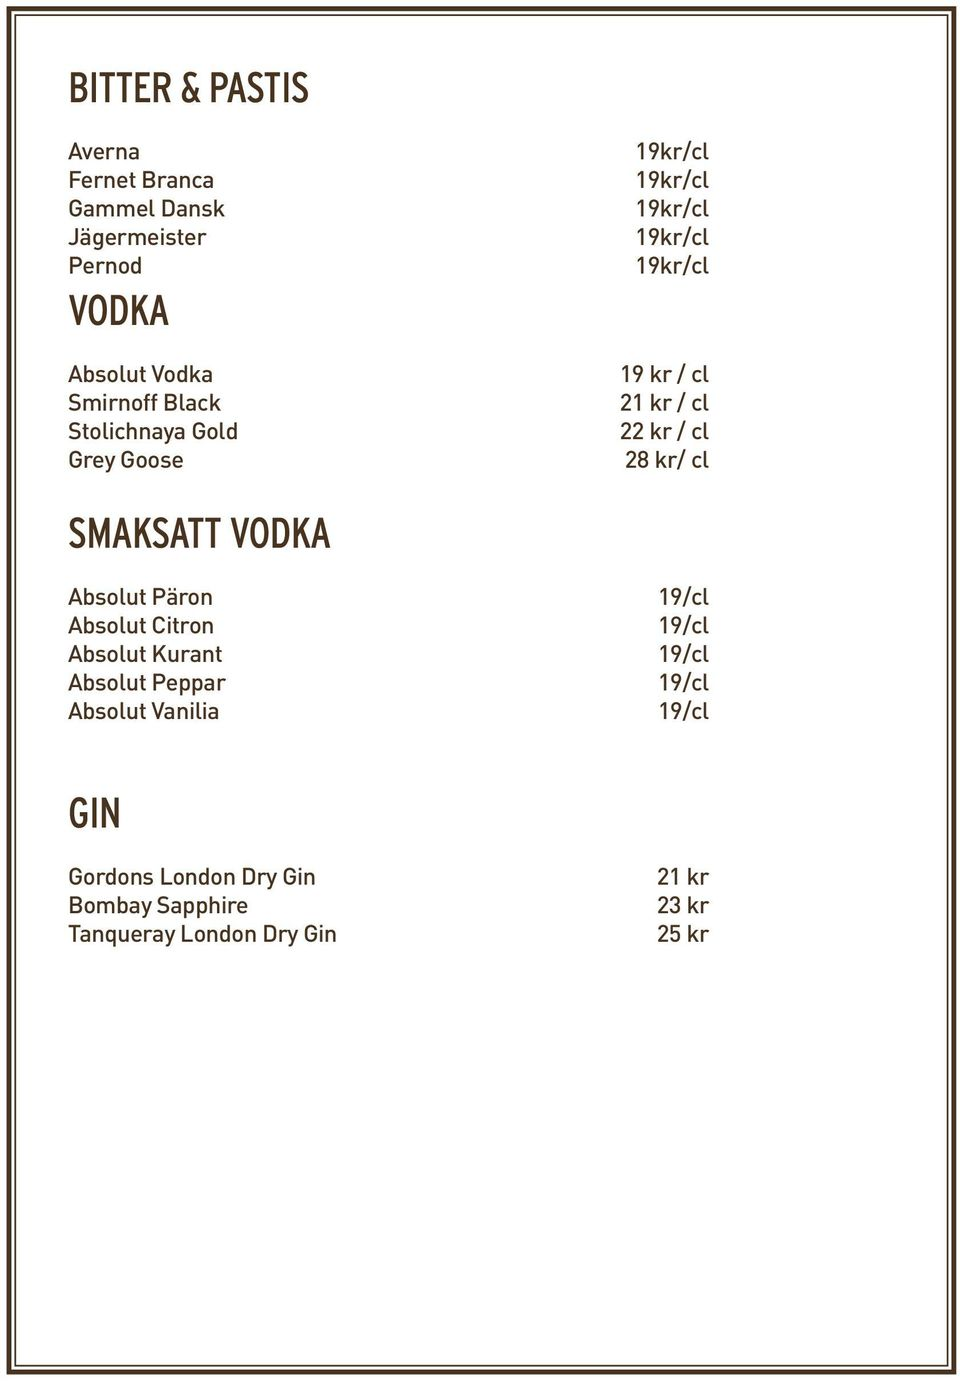 VODKA Absolut Päron Absolut Citron Absolut Kurant Absolut Peppar Absolut Vanilia 19/cl 19/cl